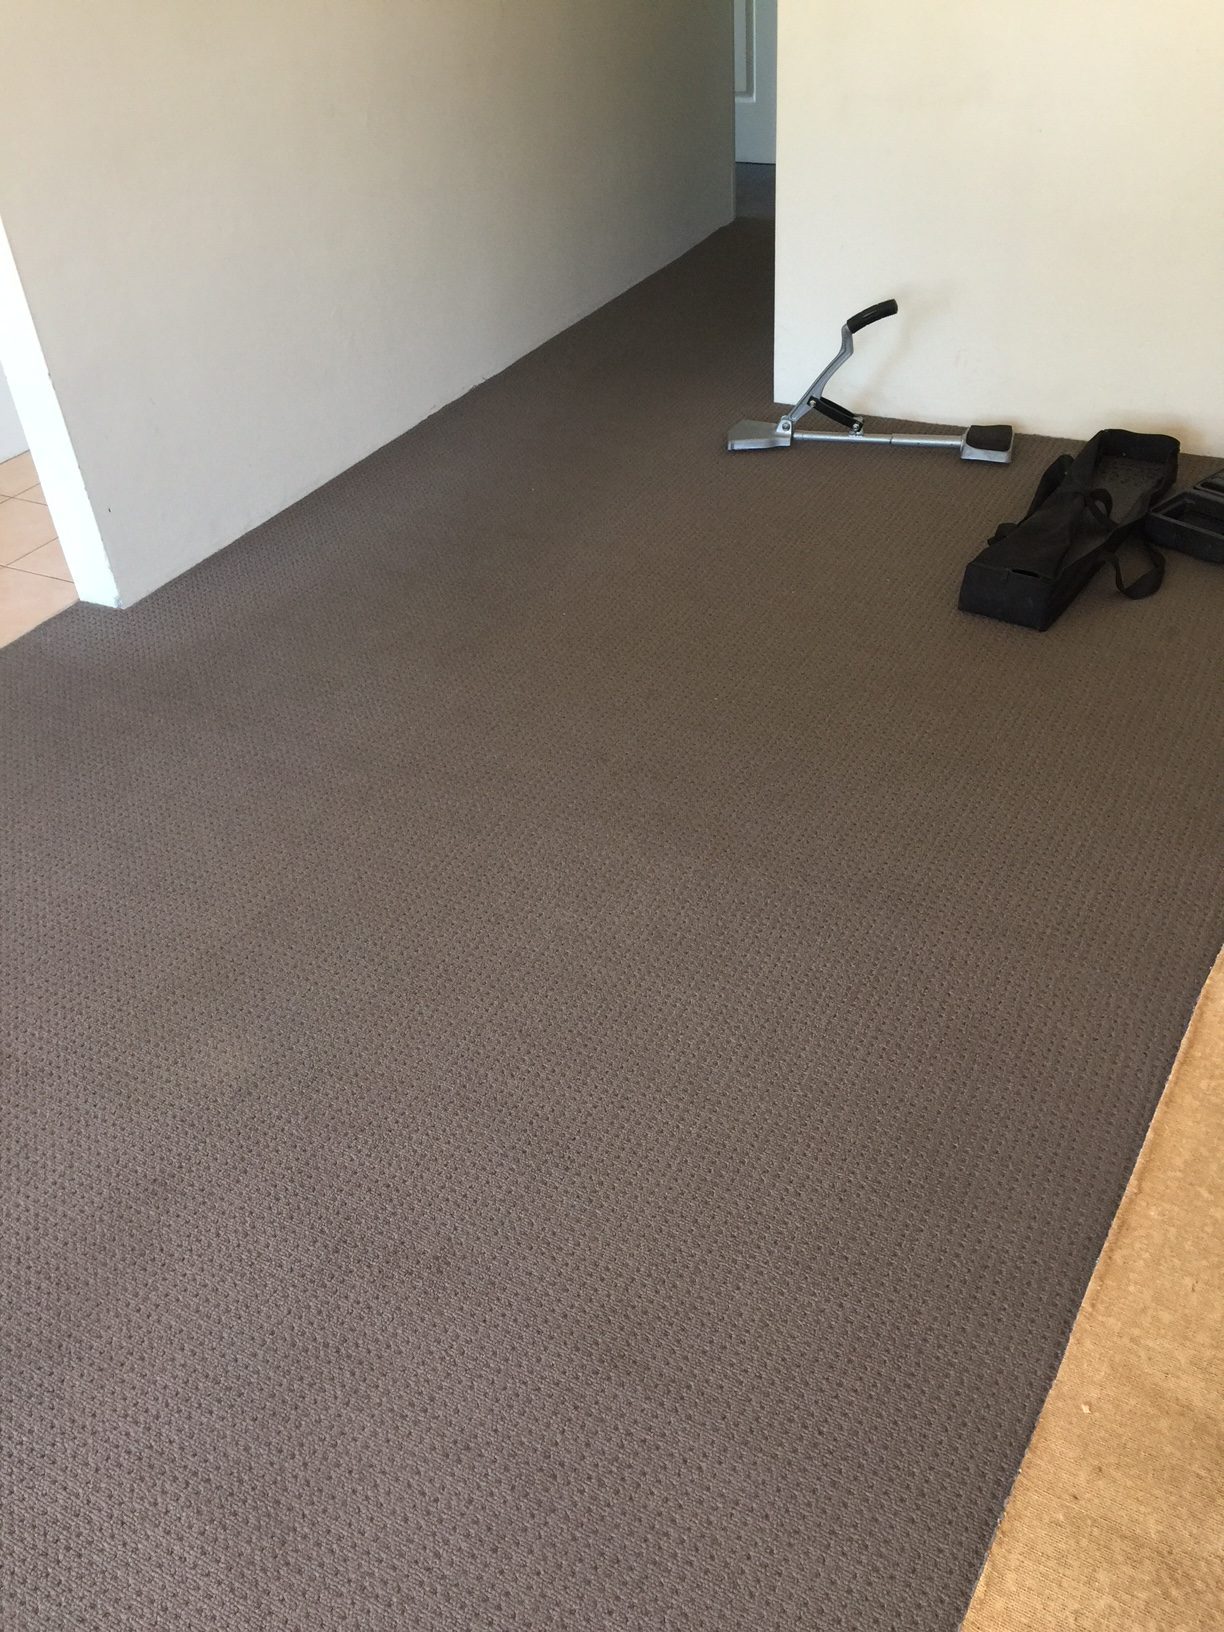 Carpet Restretching Sydney | Carpet Repair Specialist Sydney